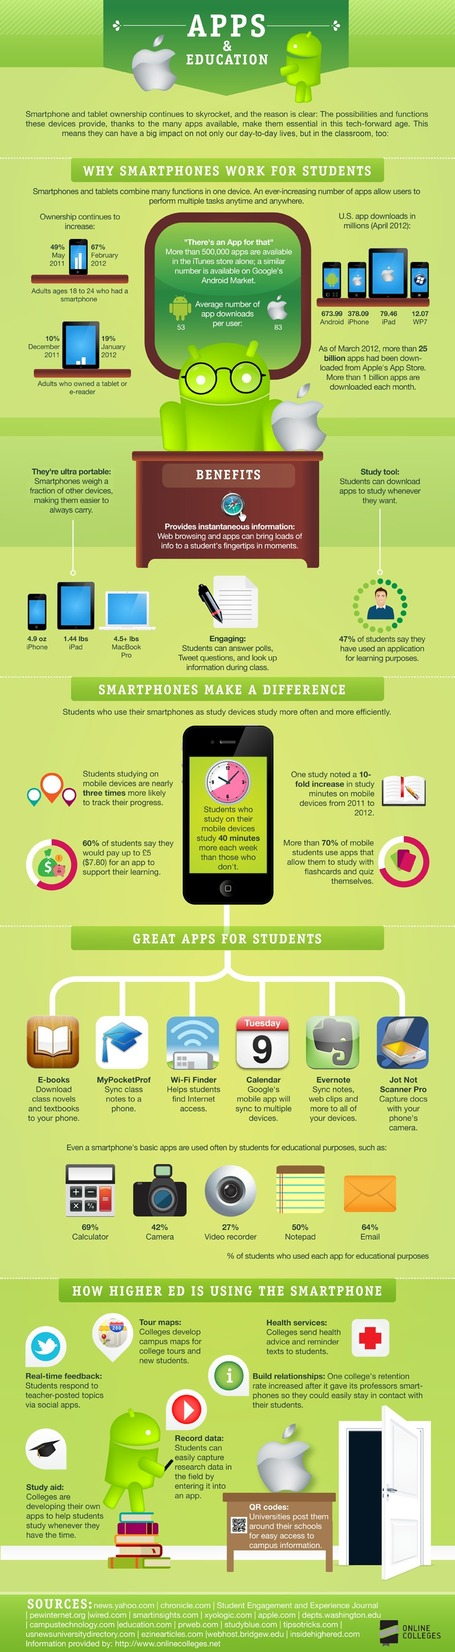 INFOGRAPHIC: Apps and Education | Business Futures | Scoop.it